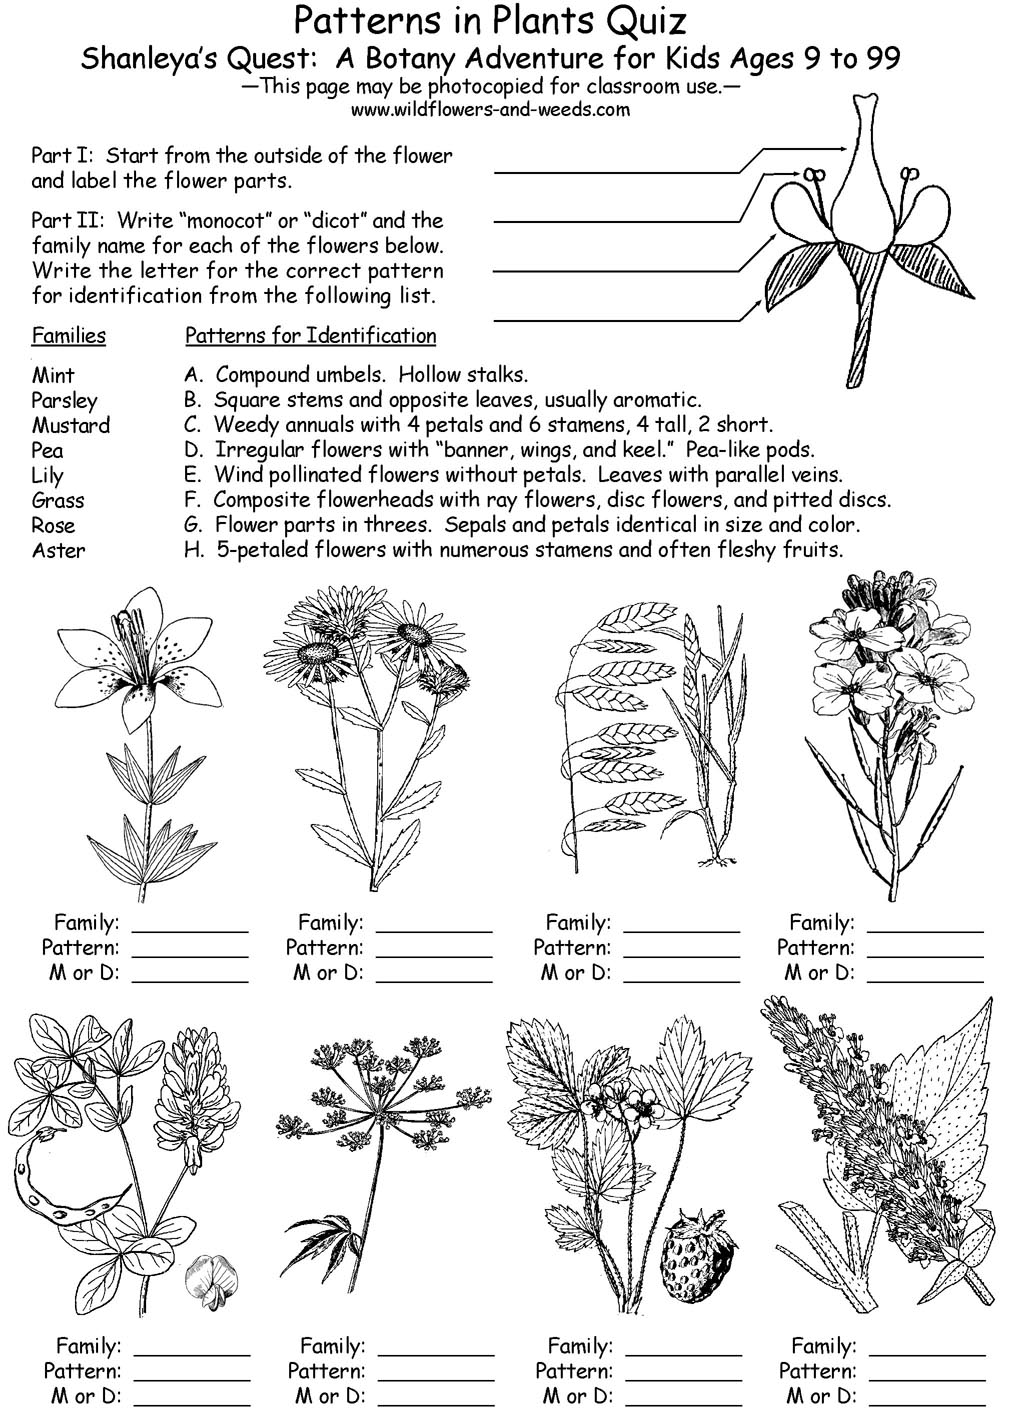 Lesson Plans: Science: Biology: Botany: Botany Mini Unit